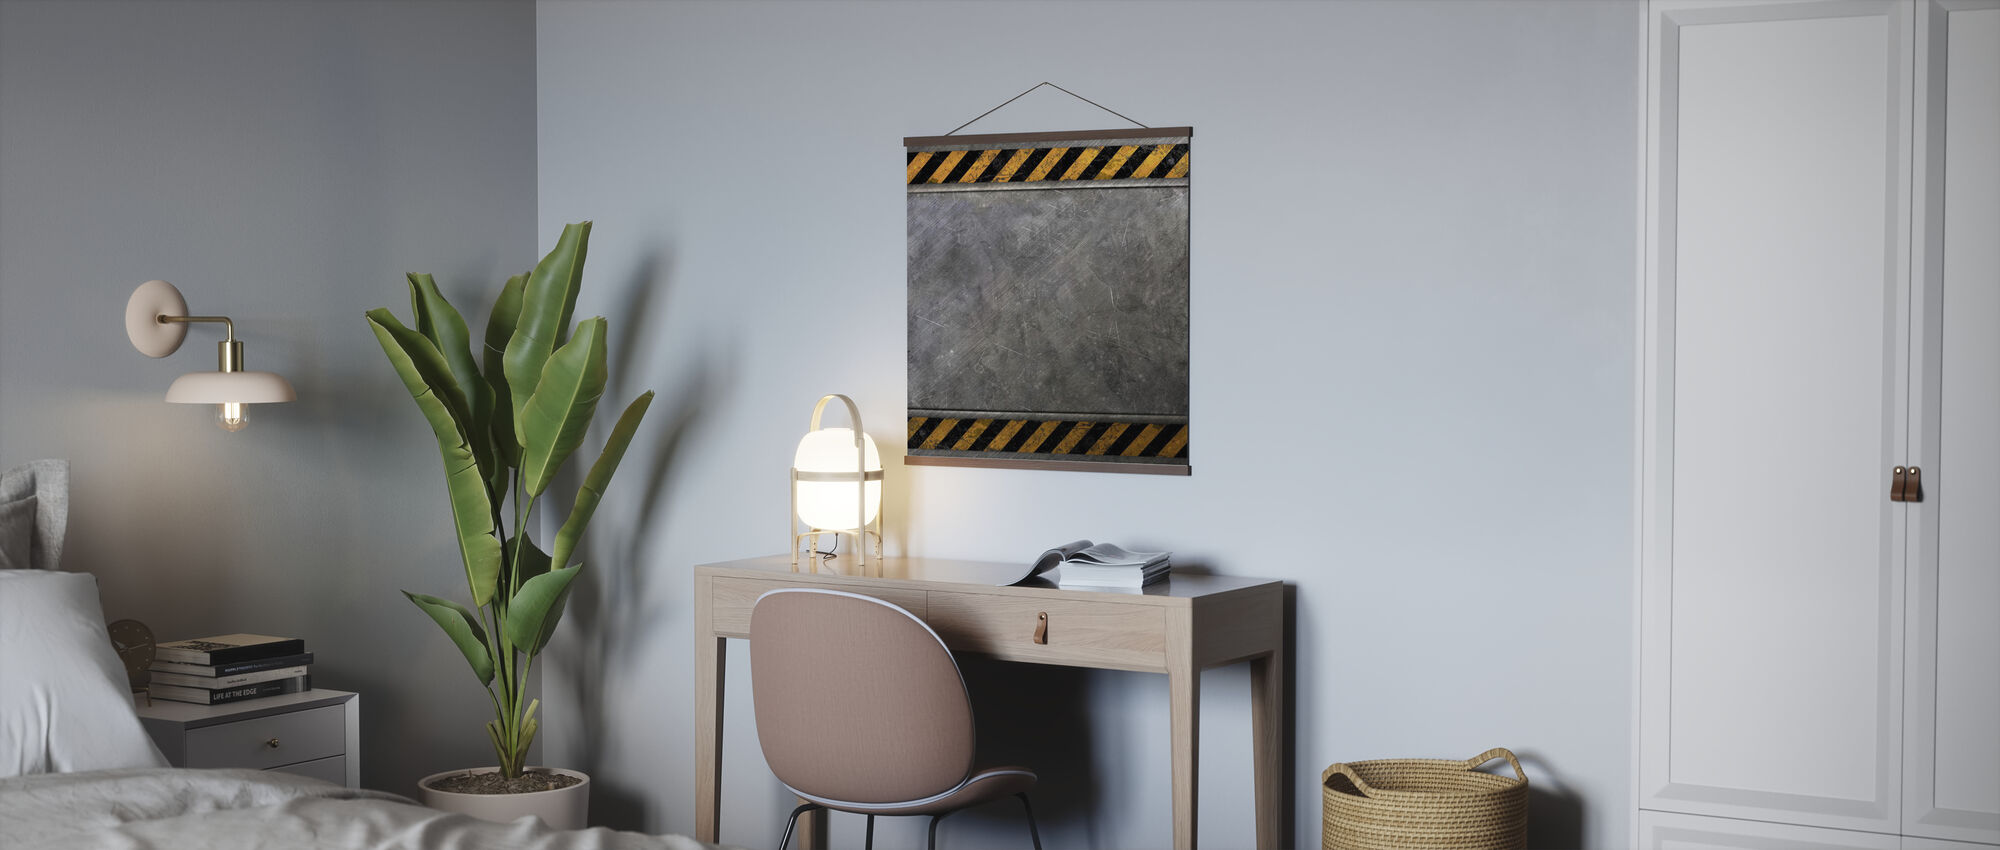 Steel Plate - Poster - Office